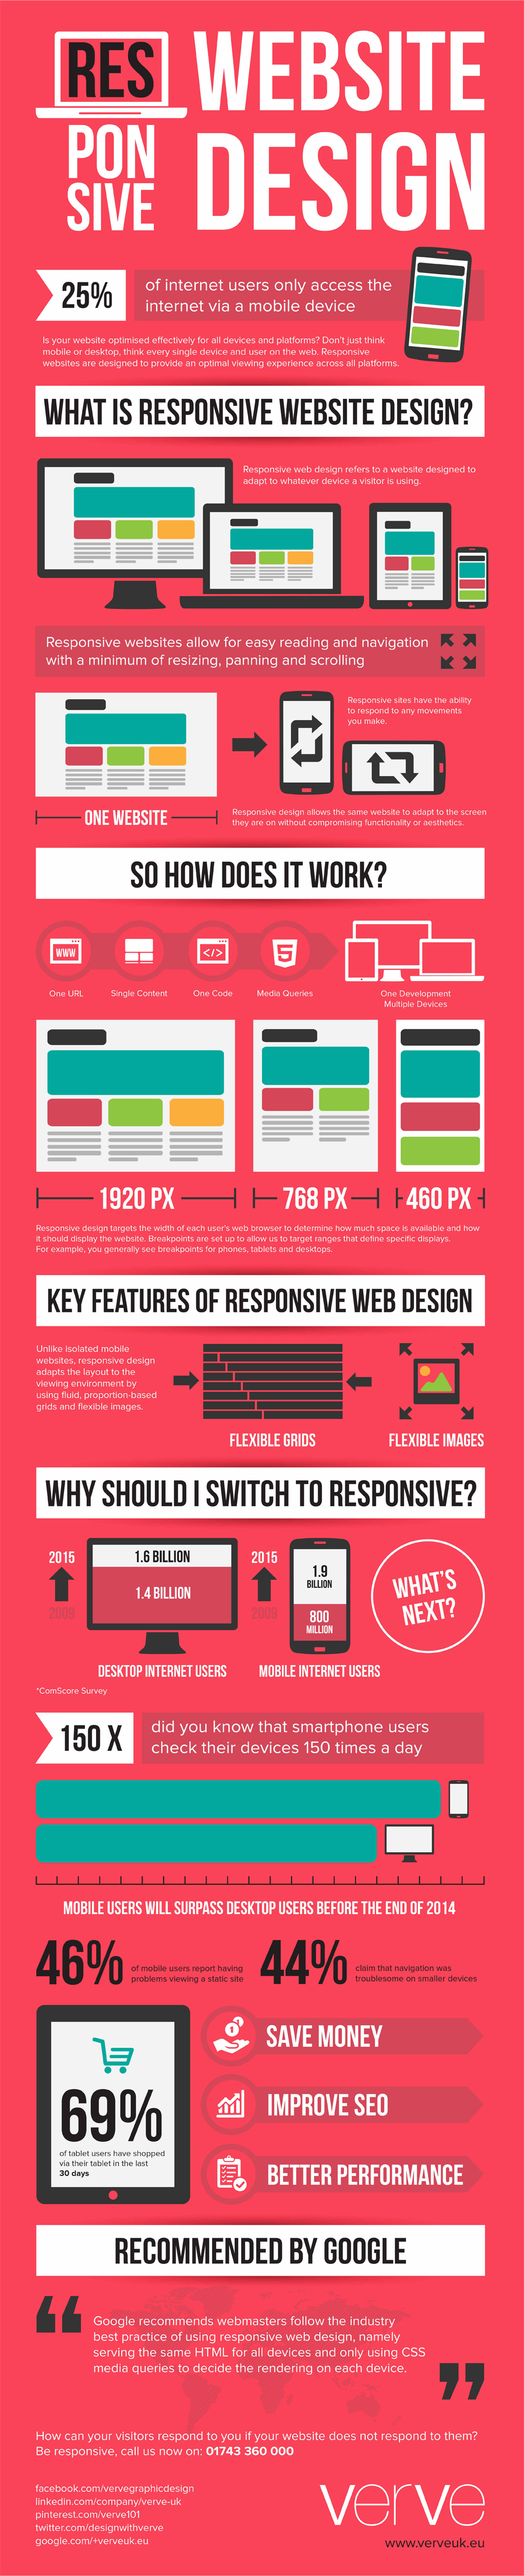 Infographic over responsive design